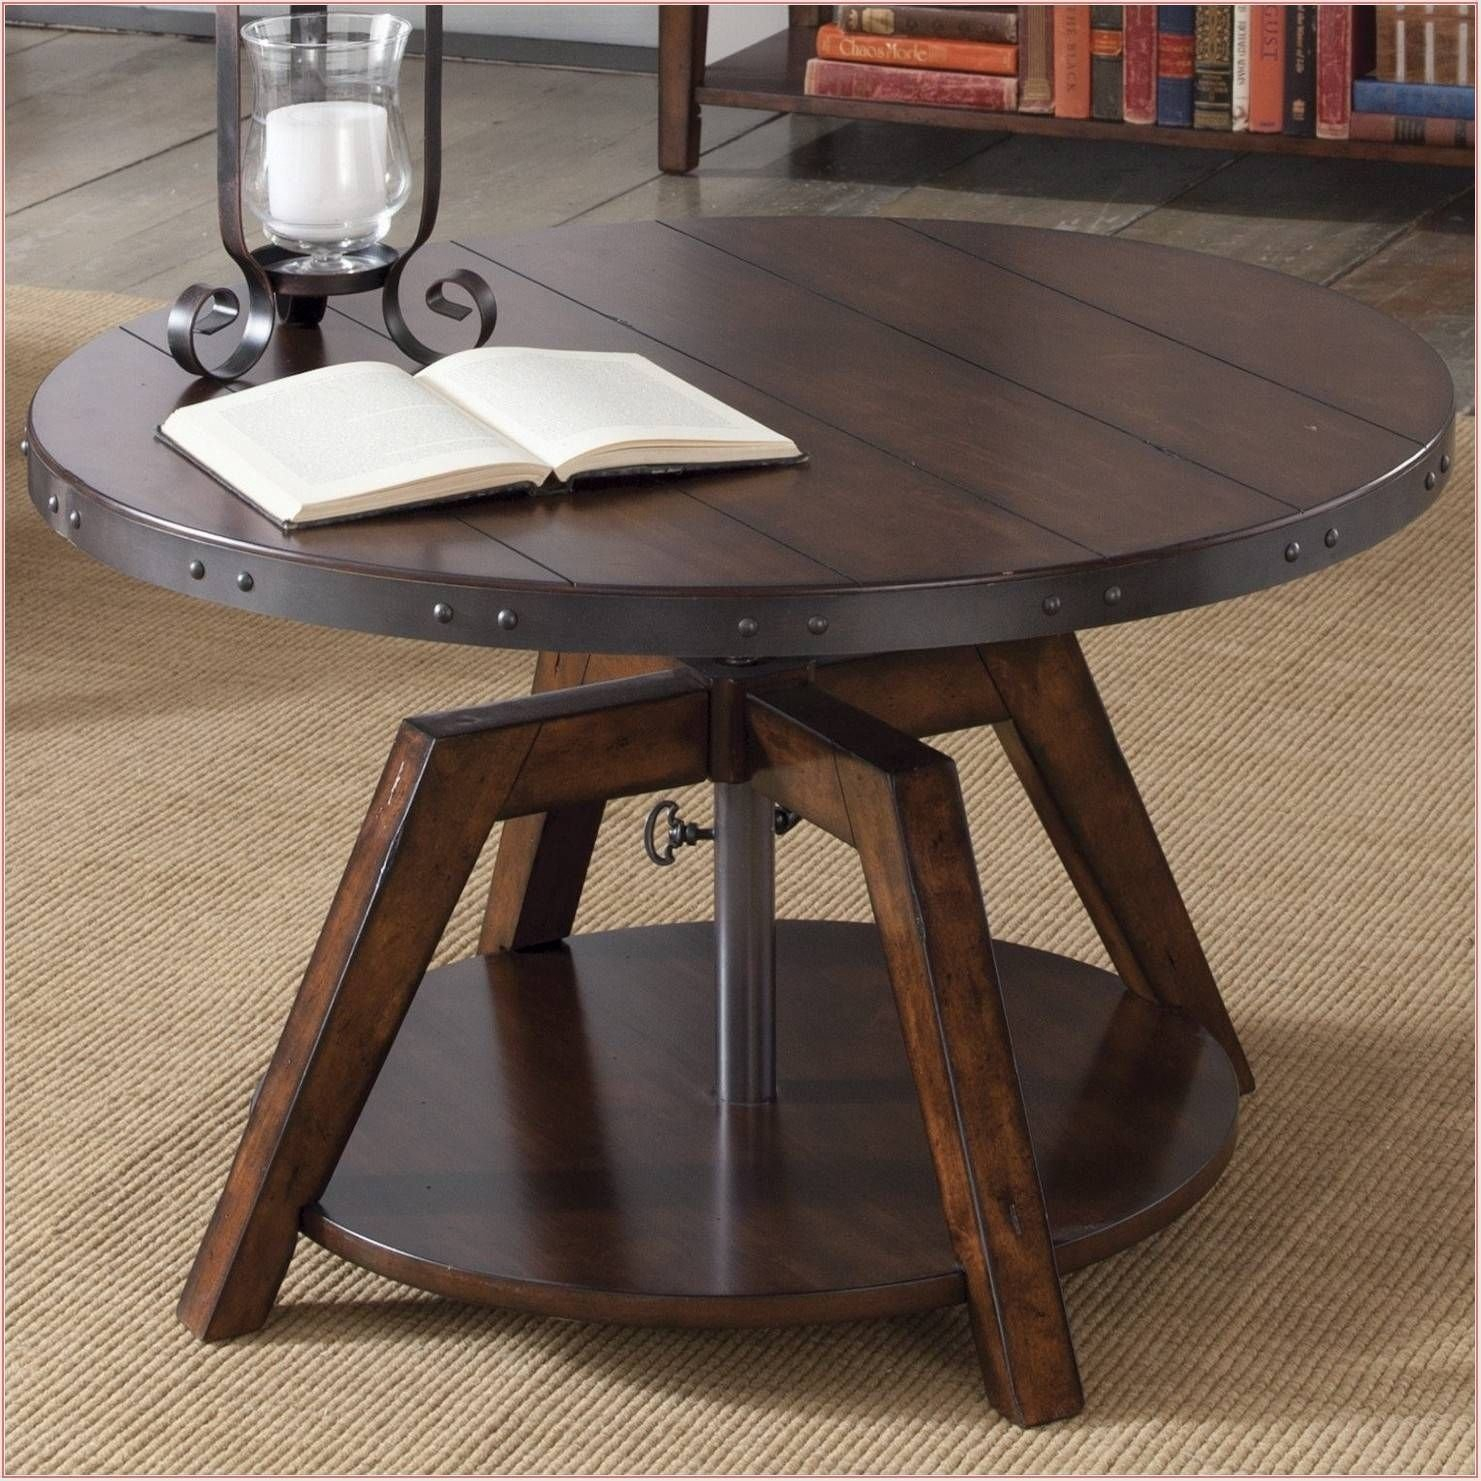 50 Amazing Convertible Coffee Table To Dining Table Up To 70 Off throughout size 1481 X 1481